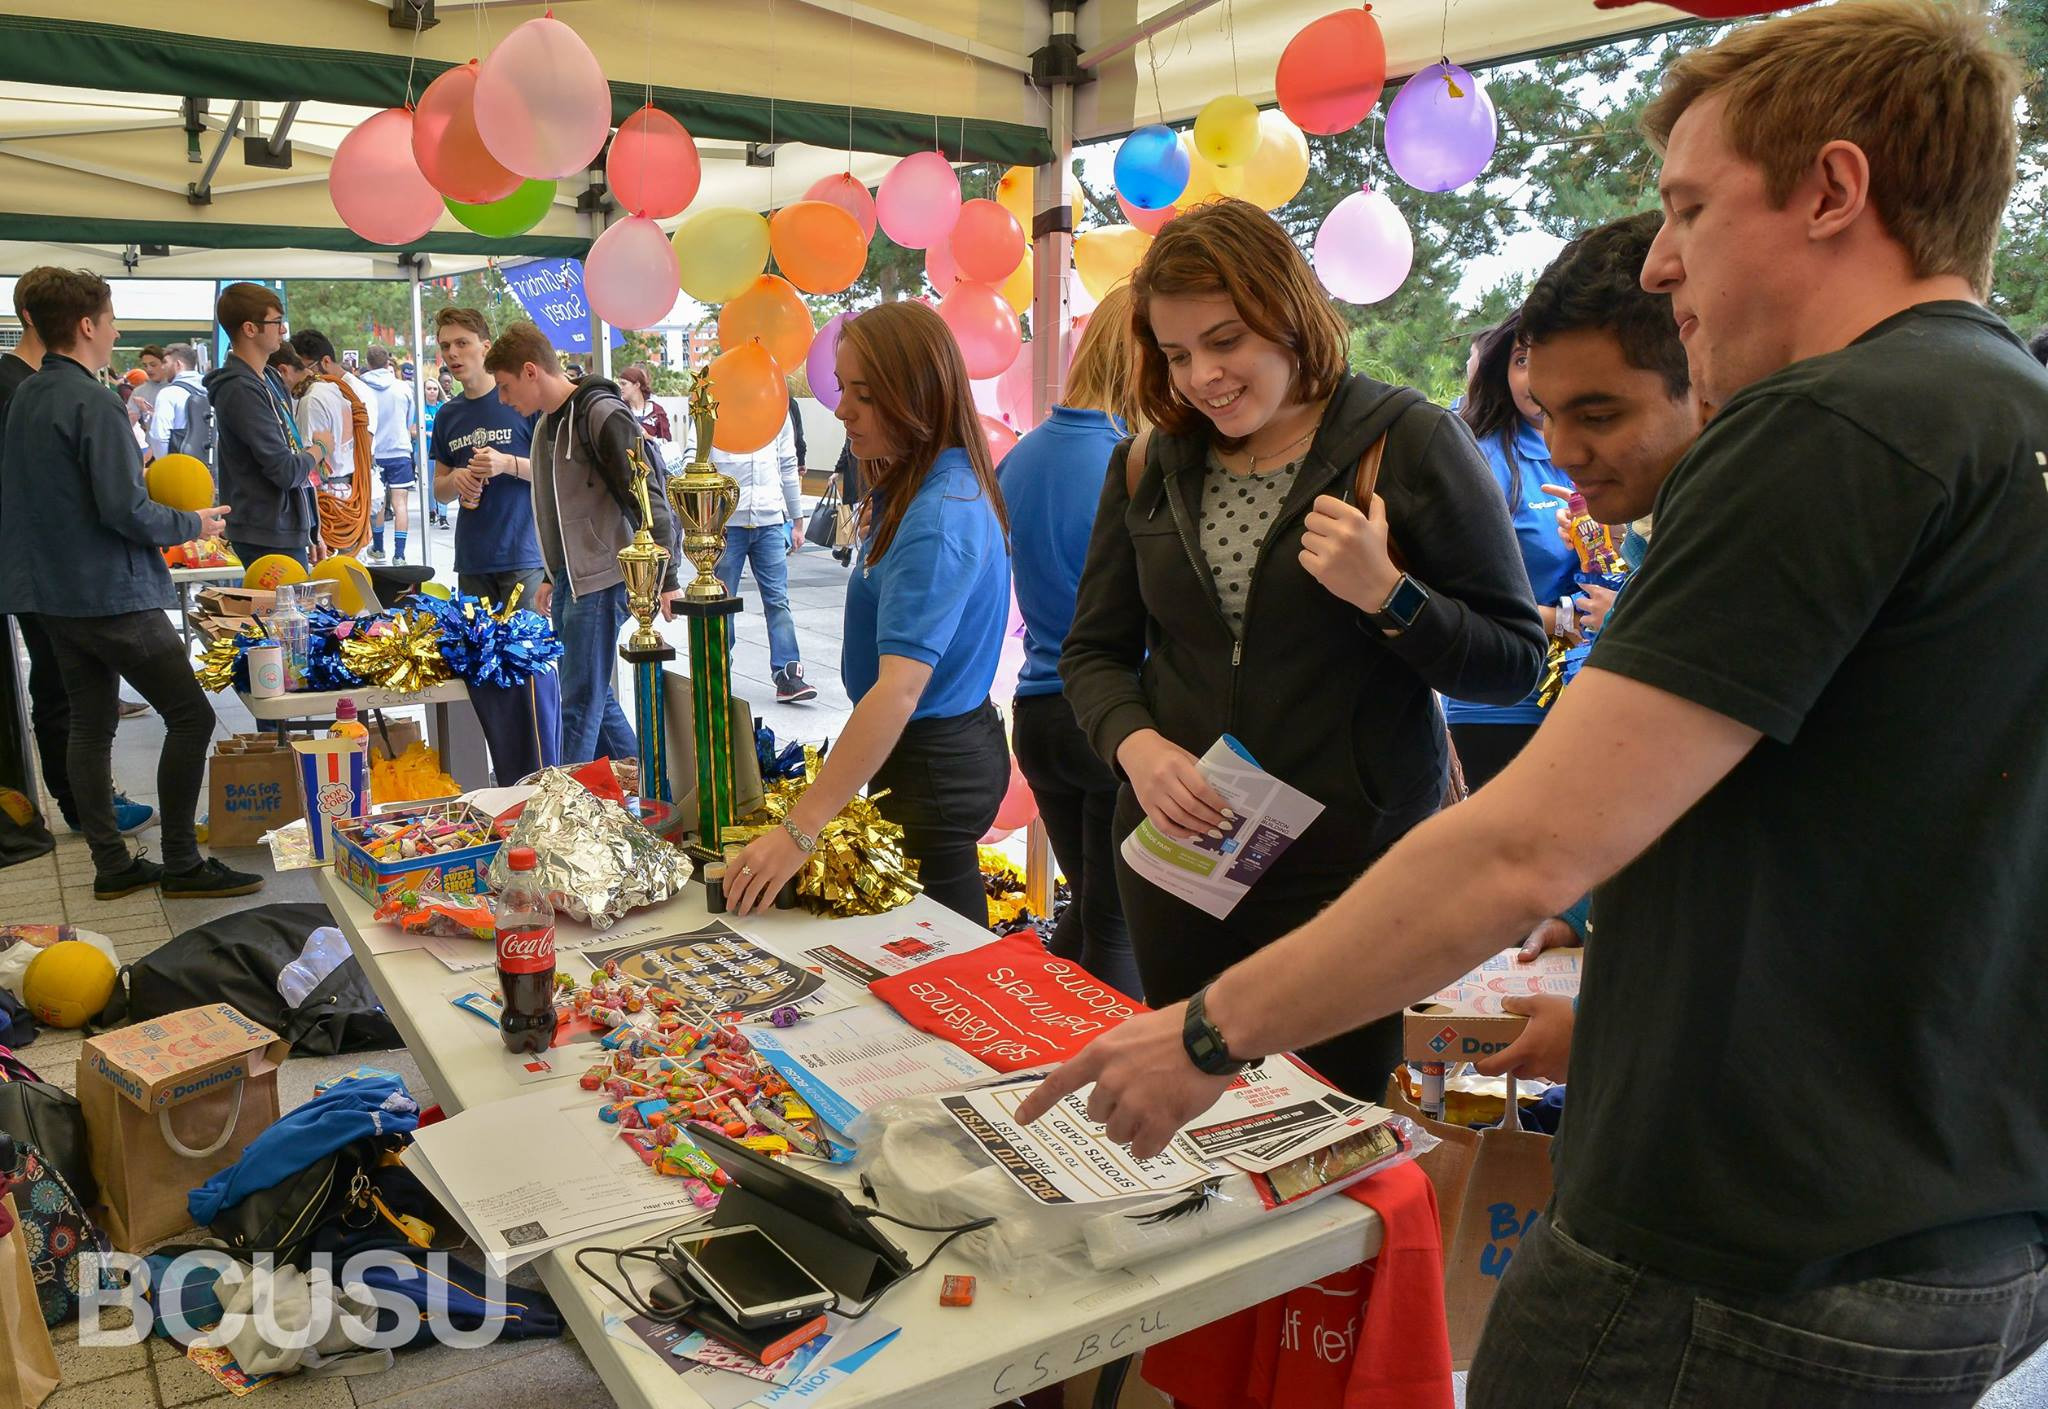 Photograph of society stall at BCUSU's Big Welcome Fair